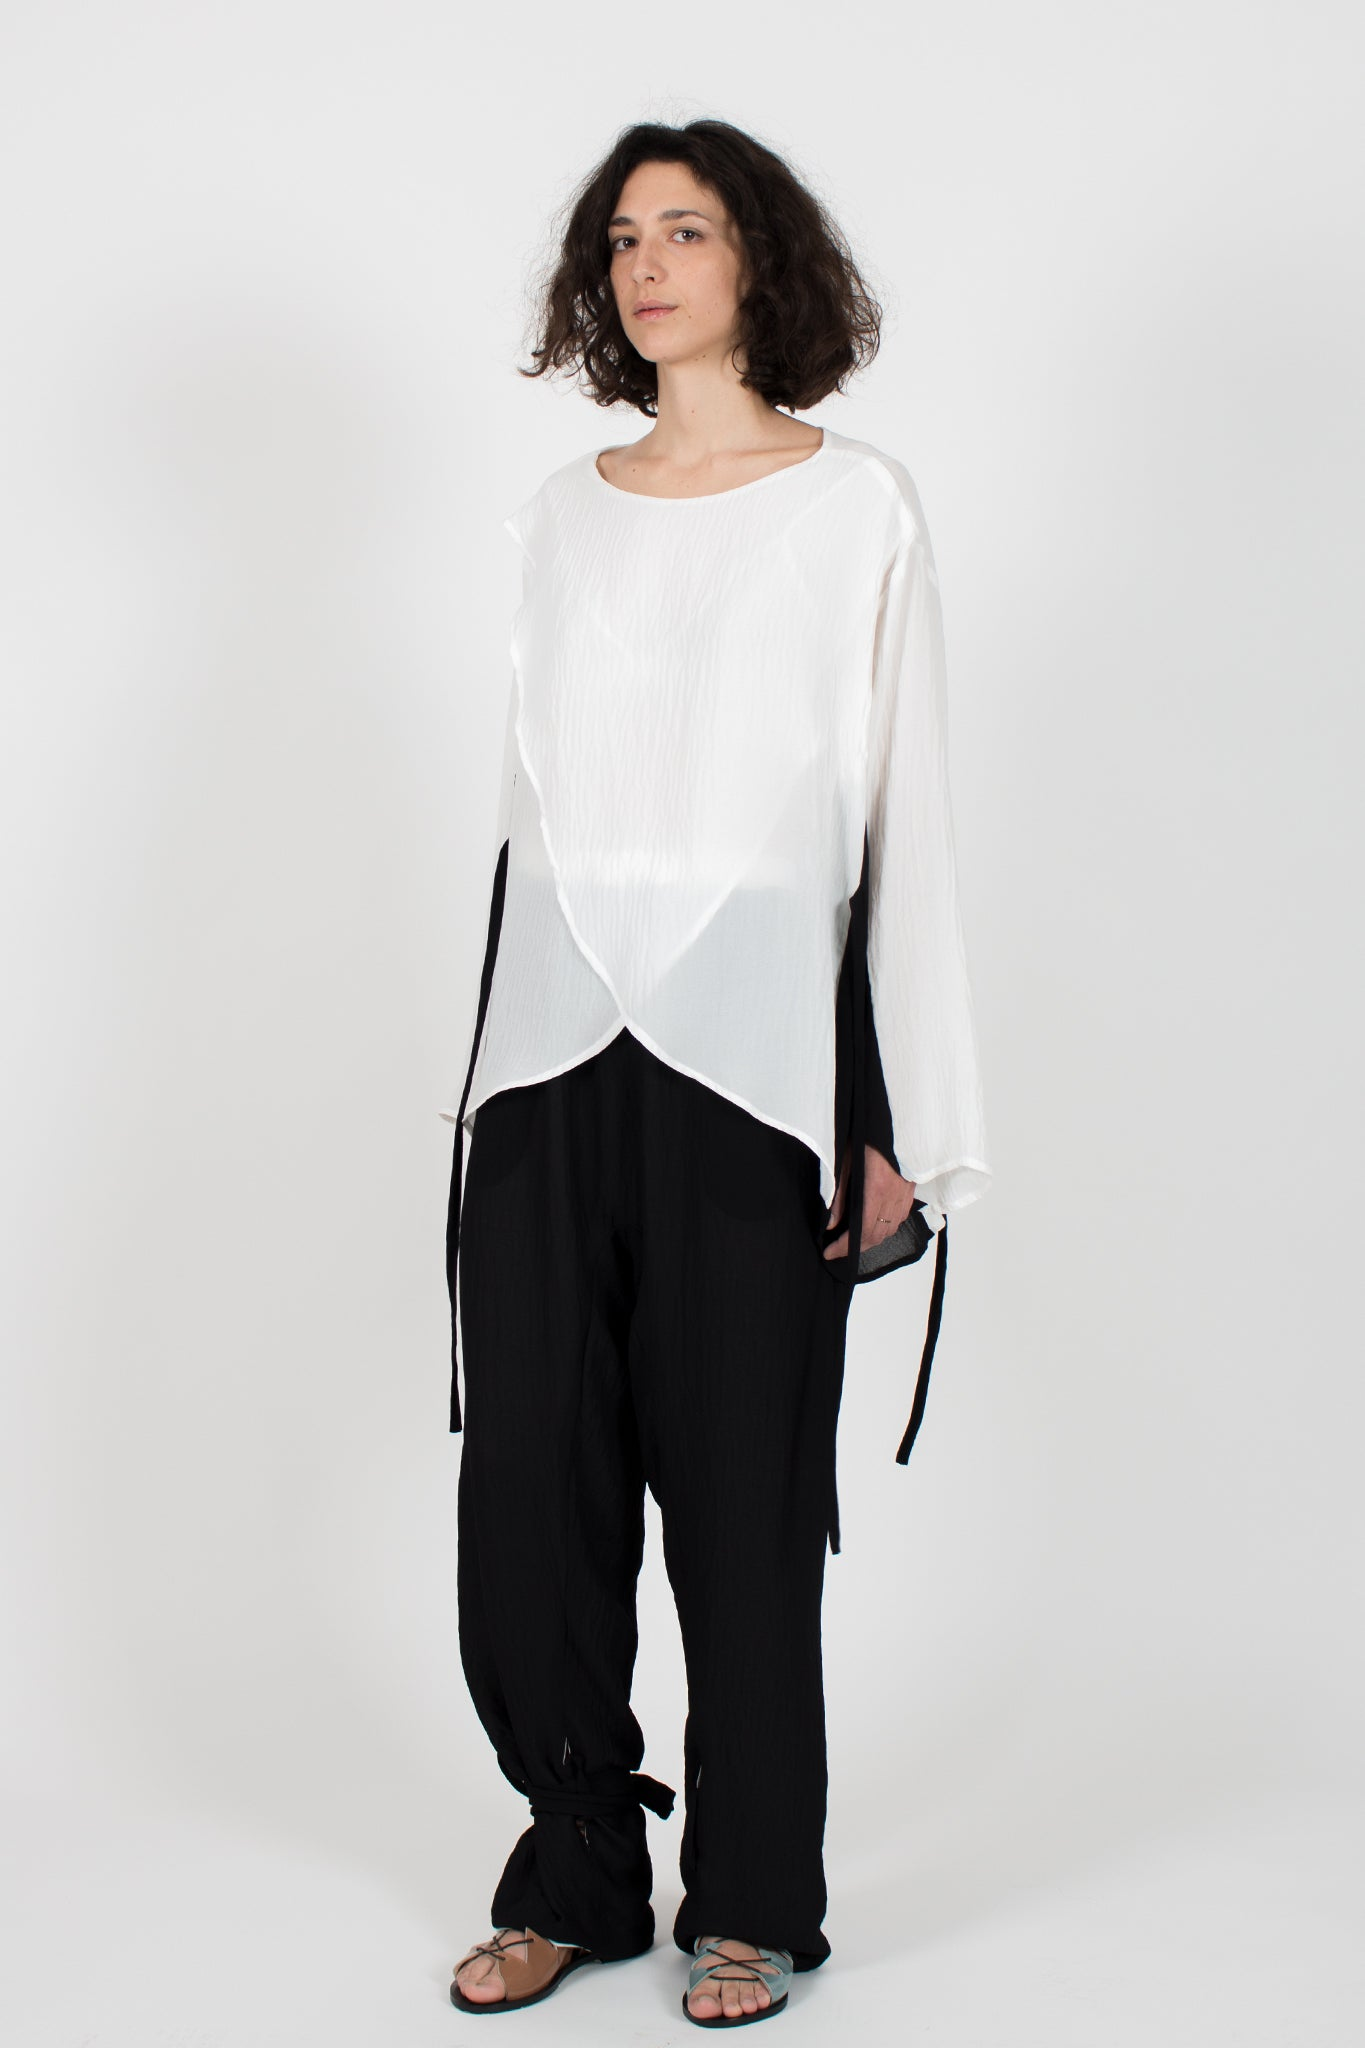 Shop CLON8 Kindness Top and Relax Double Face Trousers